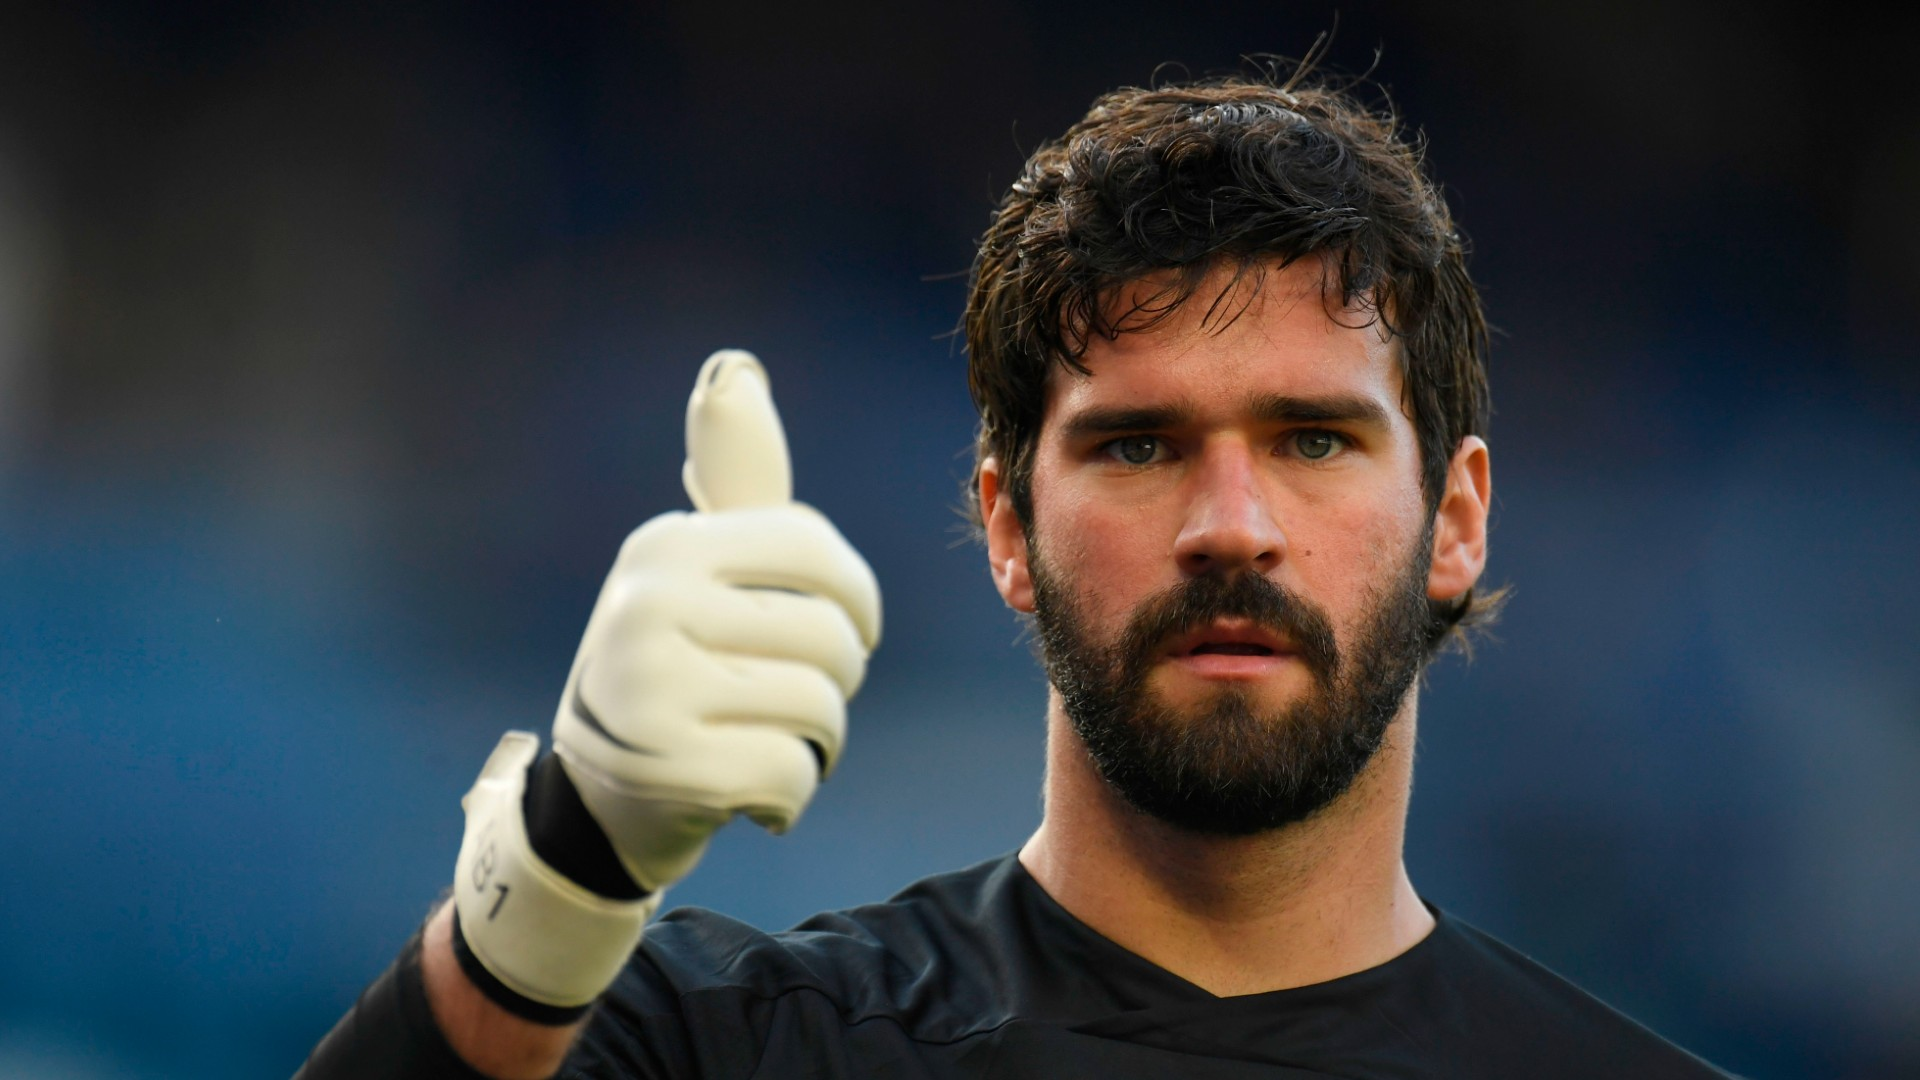 'I always work to be the best!' - Alisson on his drive to 'achieve great things' at Liverpool